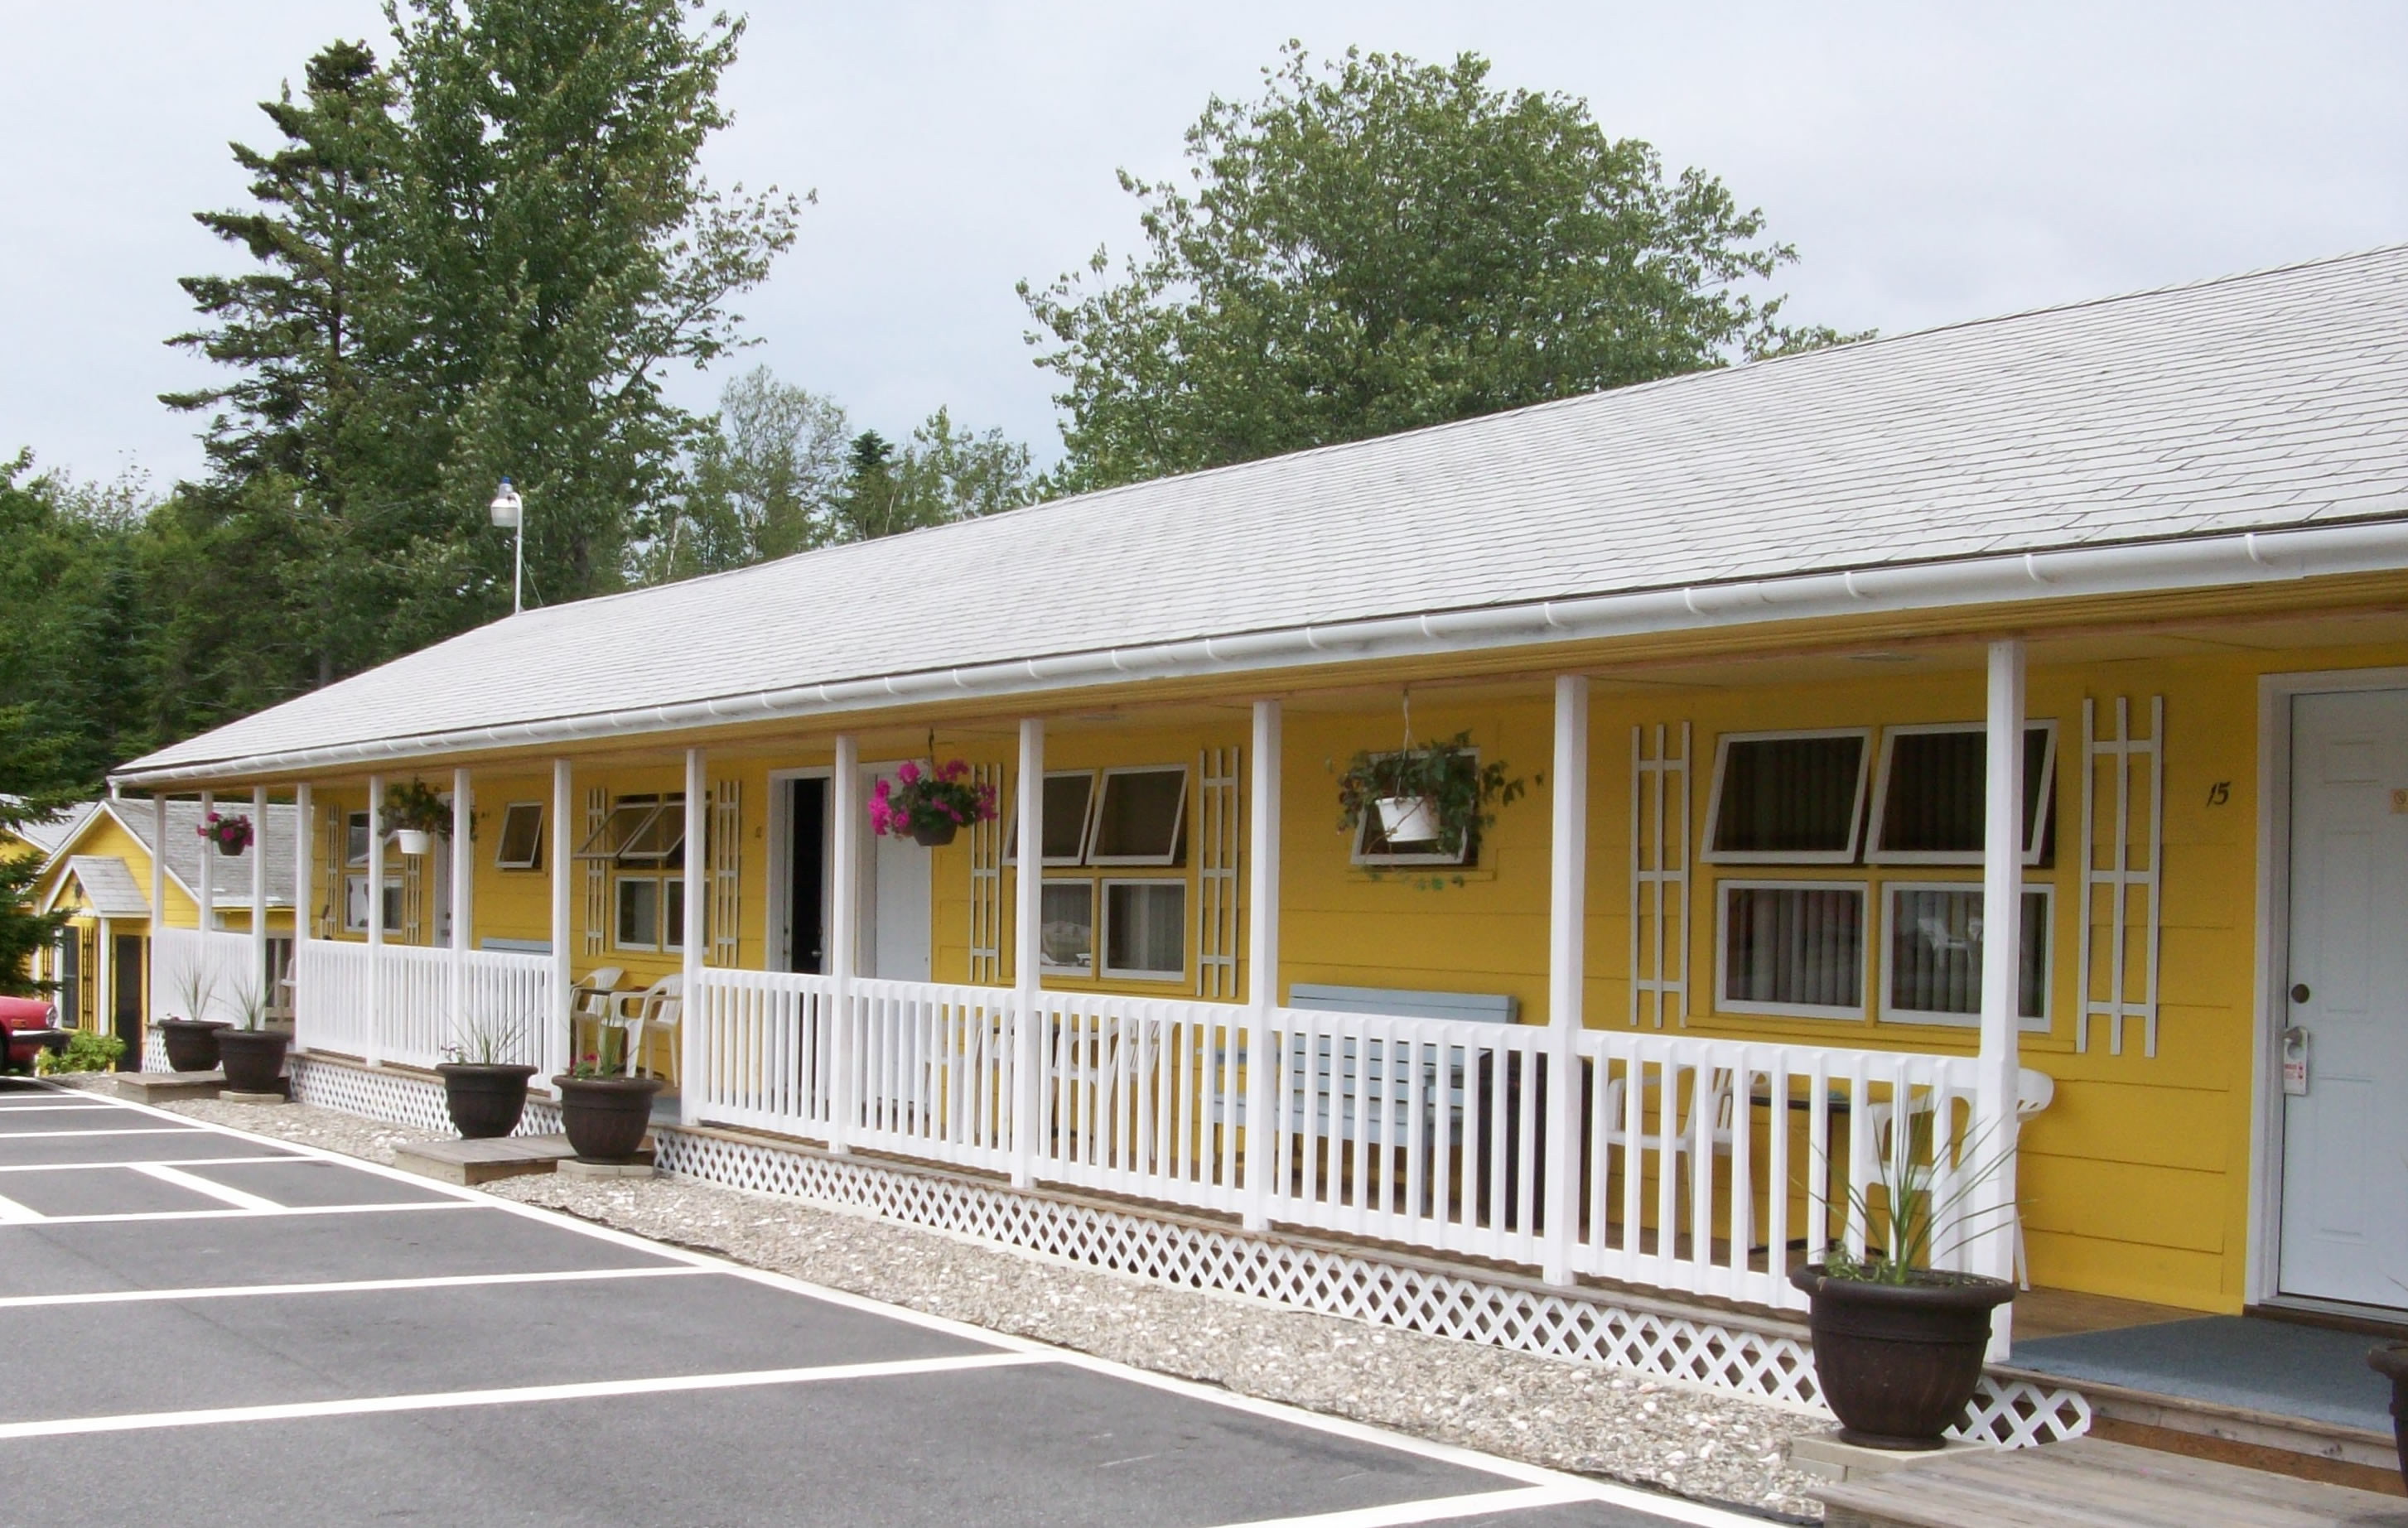 Motel units at Acadia's Sunnyside Motel & Cottages are clean, modern